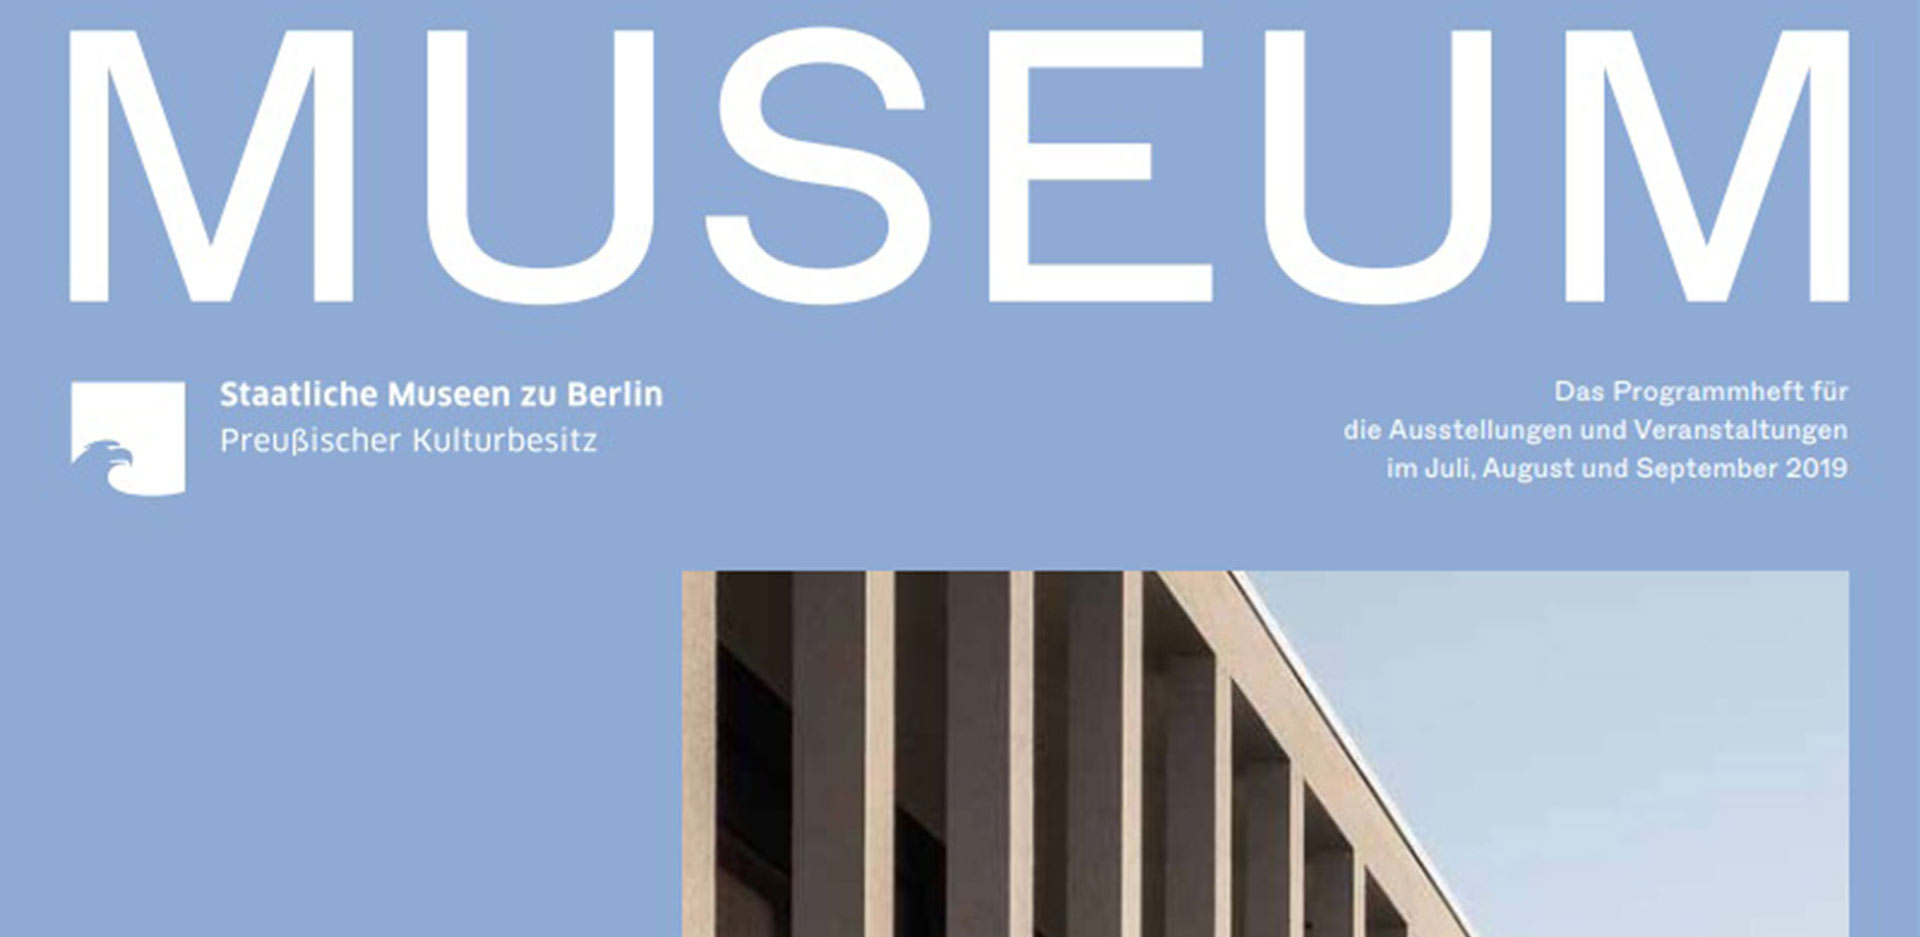 MUSEUM III 2019 - The program of the Staatliche Museen zu Berlin is out now!